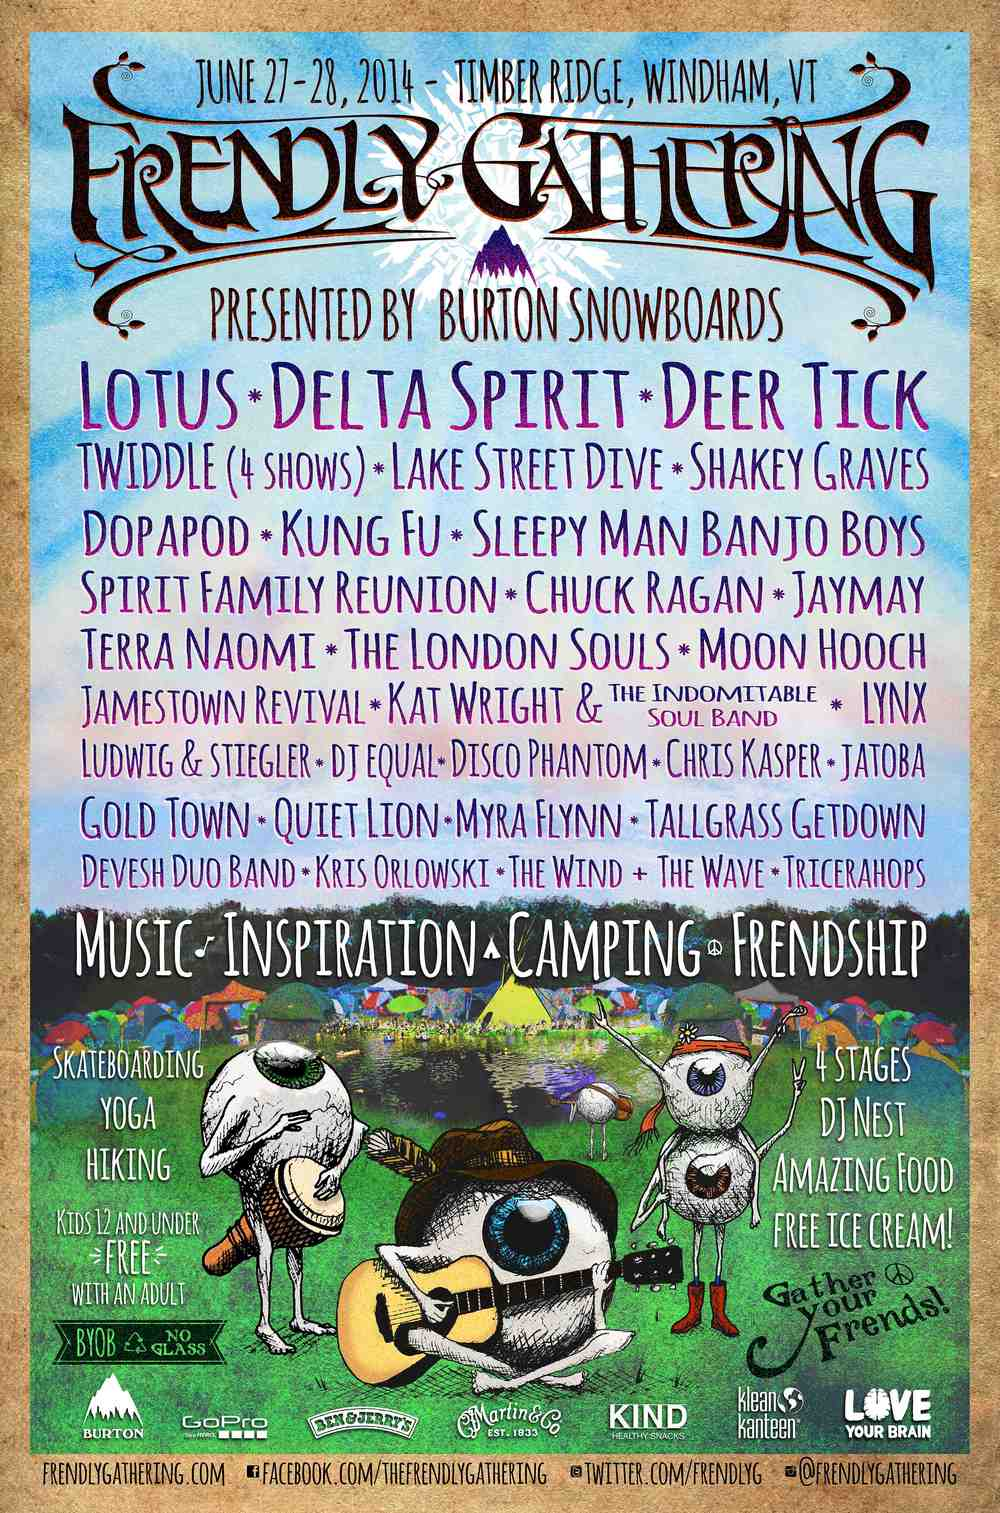 2014 Frendly Gathering Poster Artist: Chuck McLean